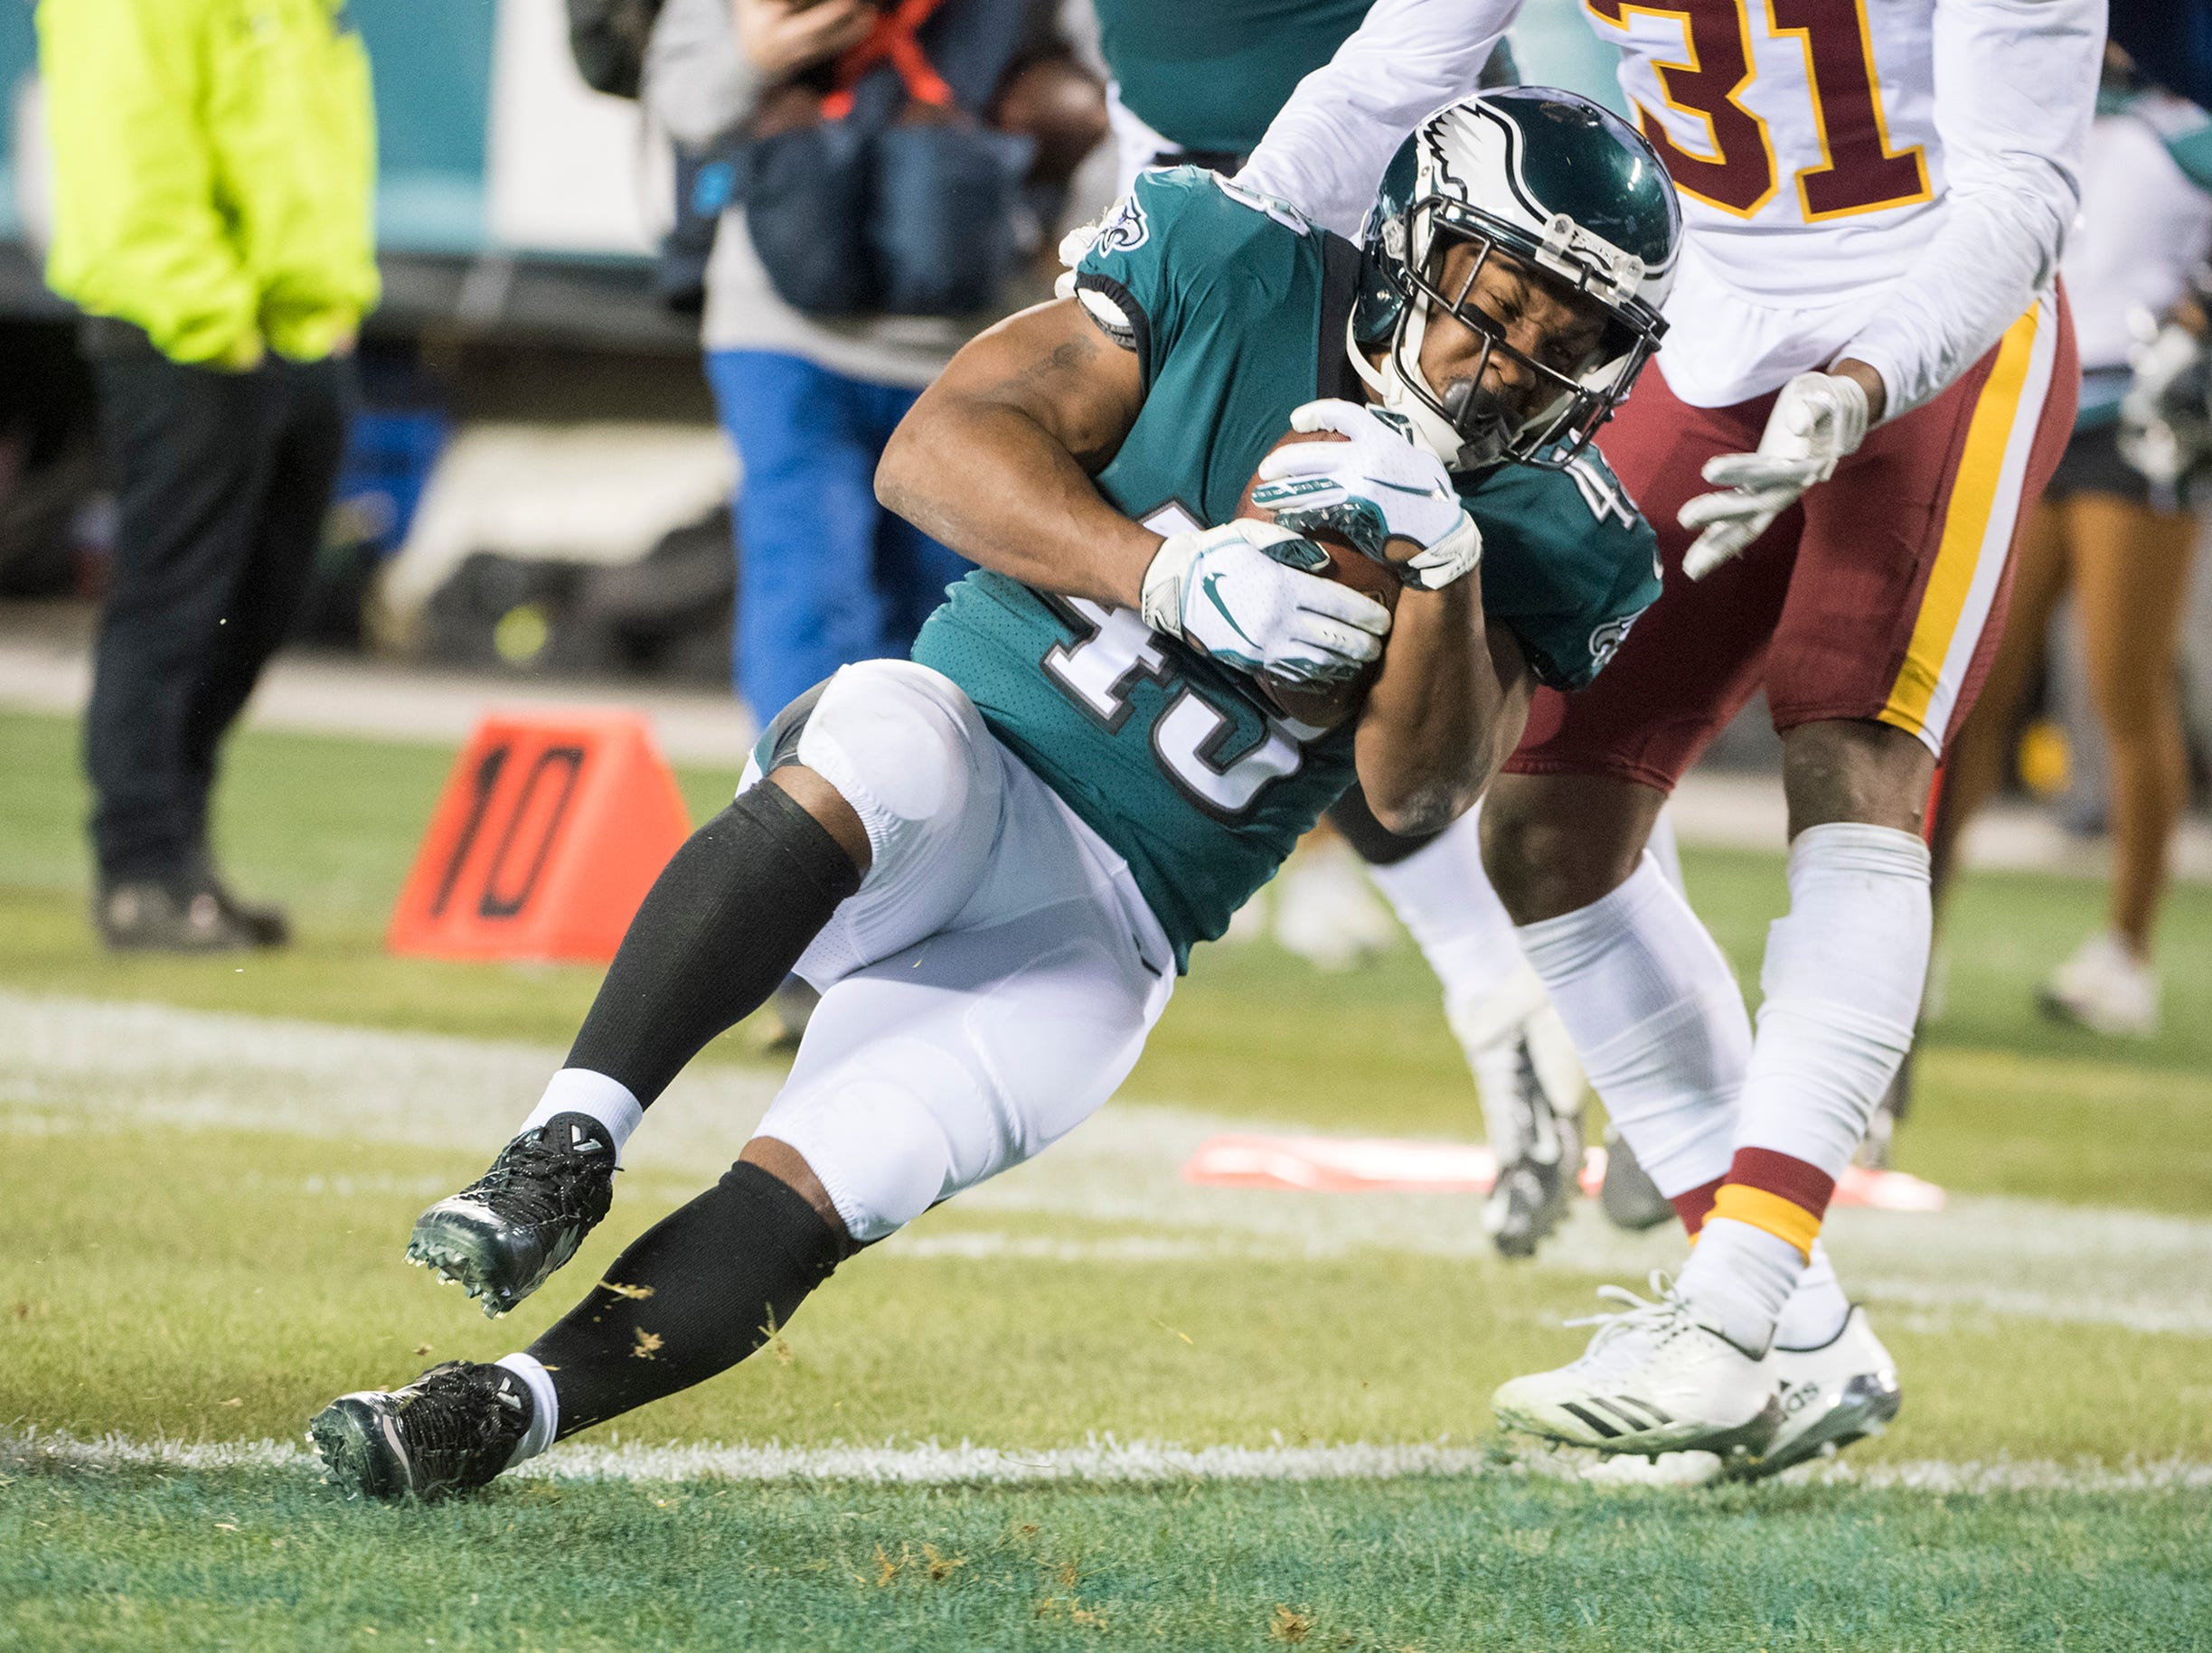 Eagles' Darren Sproles (43) scores against Washington Monday, Dec. 3, 2018 in Philadelphia.